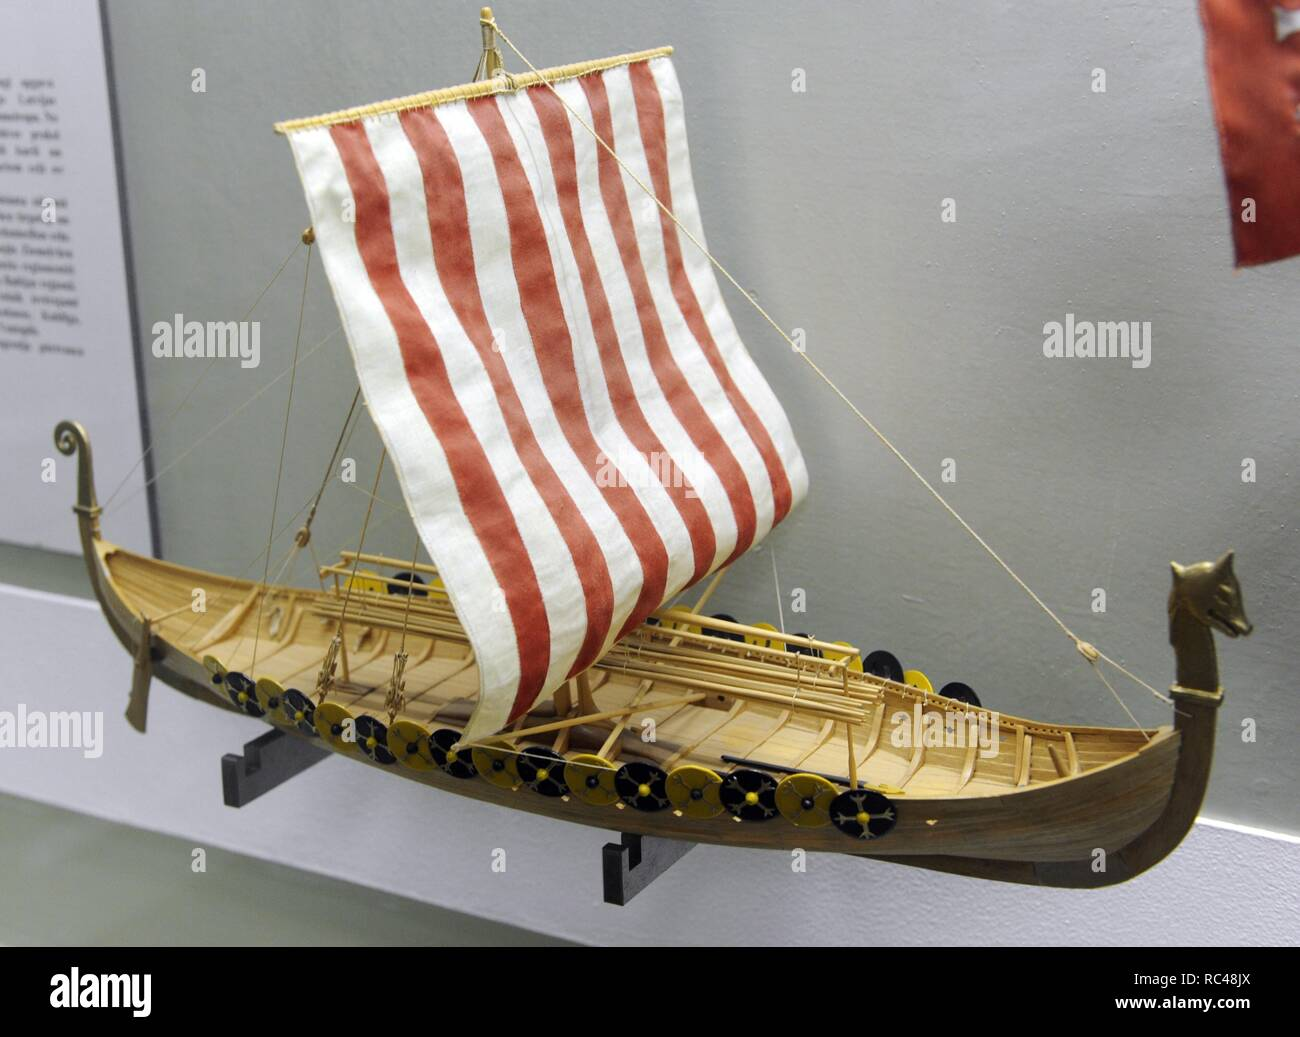 History of navigation. Middle ages. Europe. Viking ship. 9th century. Found in 1880, Norway. Model of A. Twill, 1988. Museum of History and Navigation. Riga. Latvia. - Stock Image